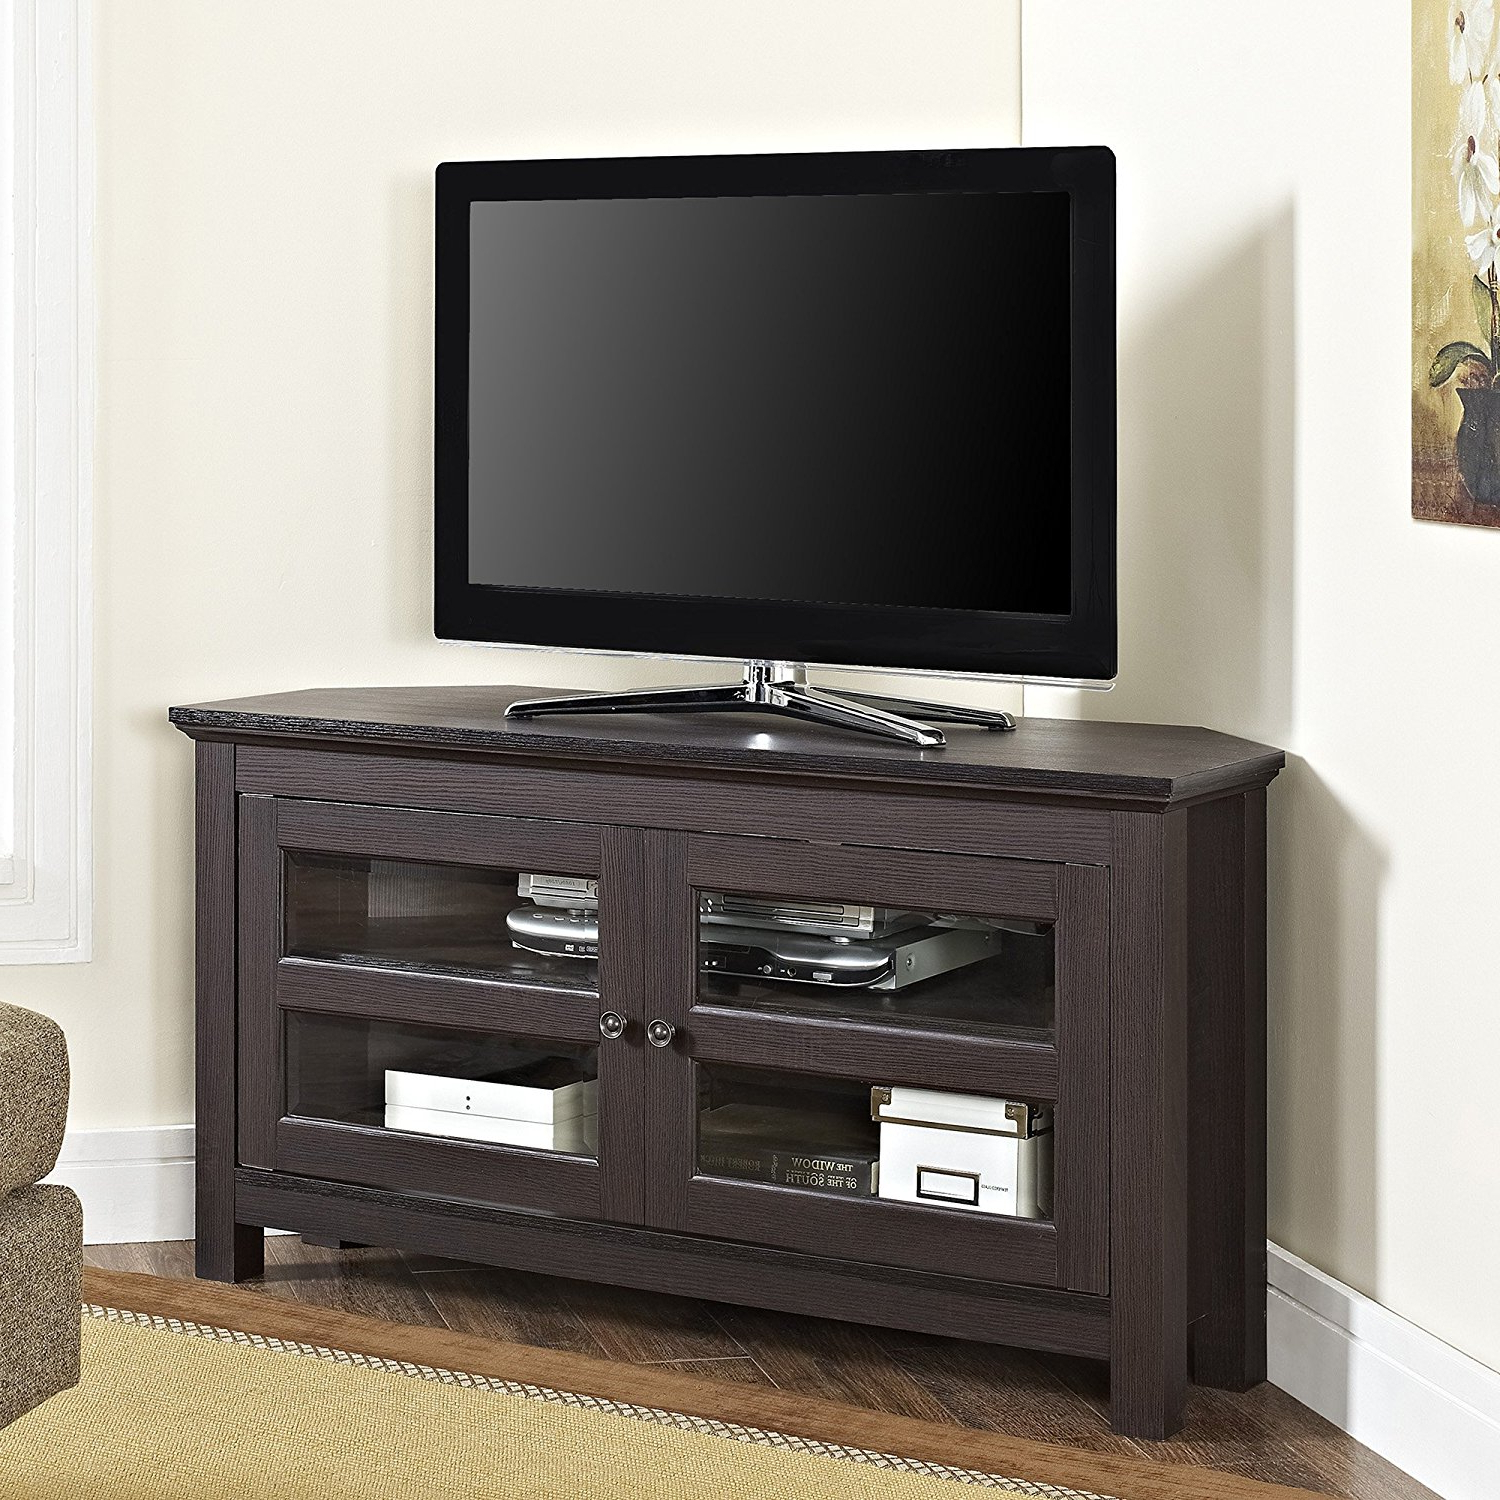 Top 10 Best Modern Tall Corner Tv Stands In 2021 Reviews With Priya Corner Tv Stands (View 4 of 20)